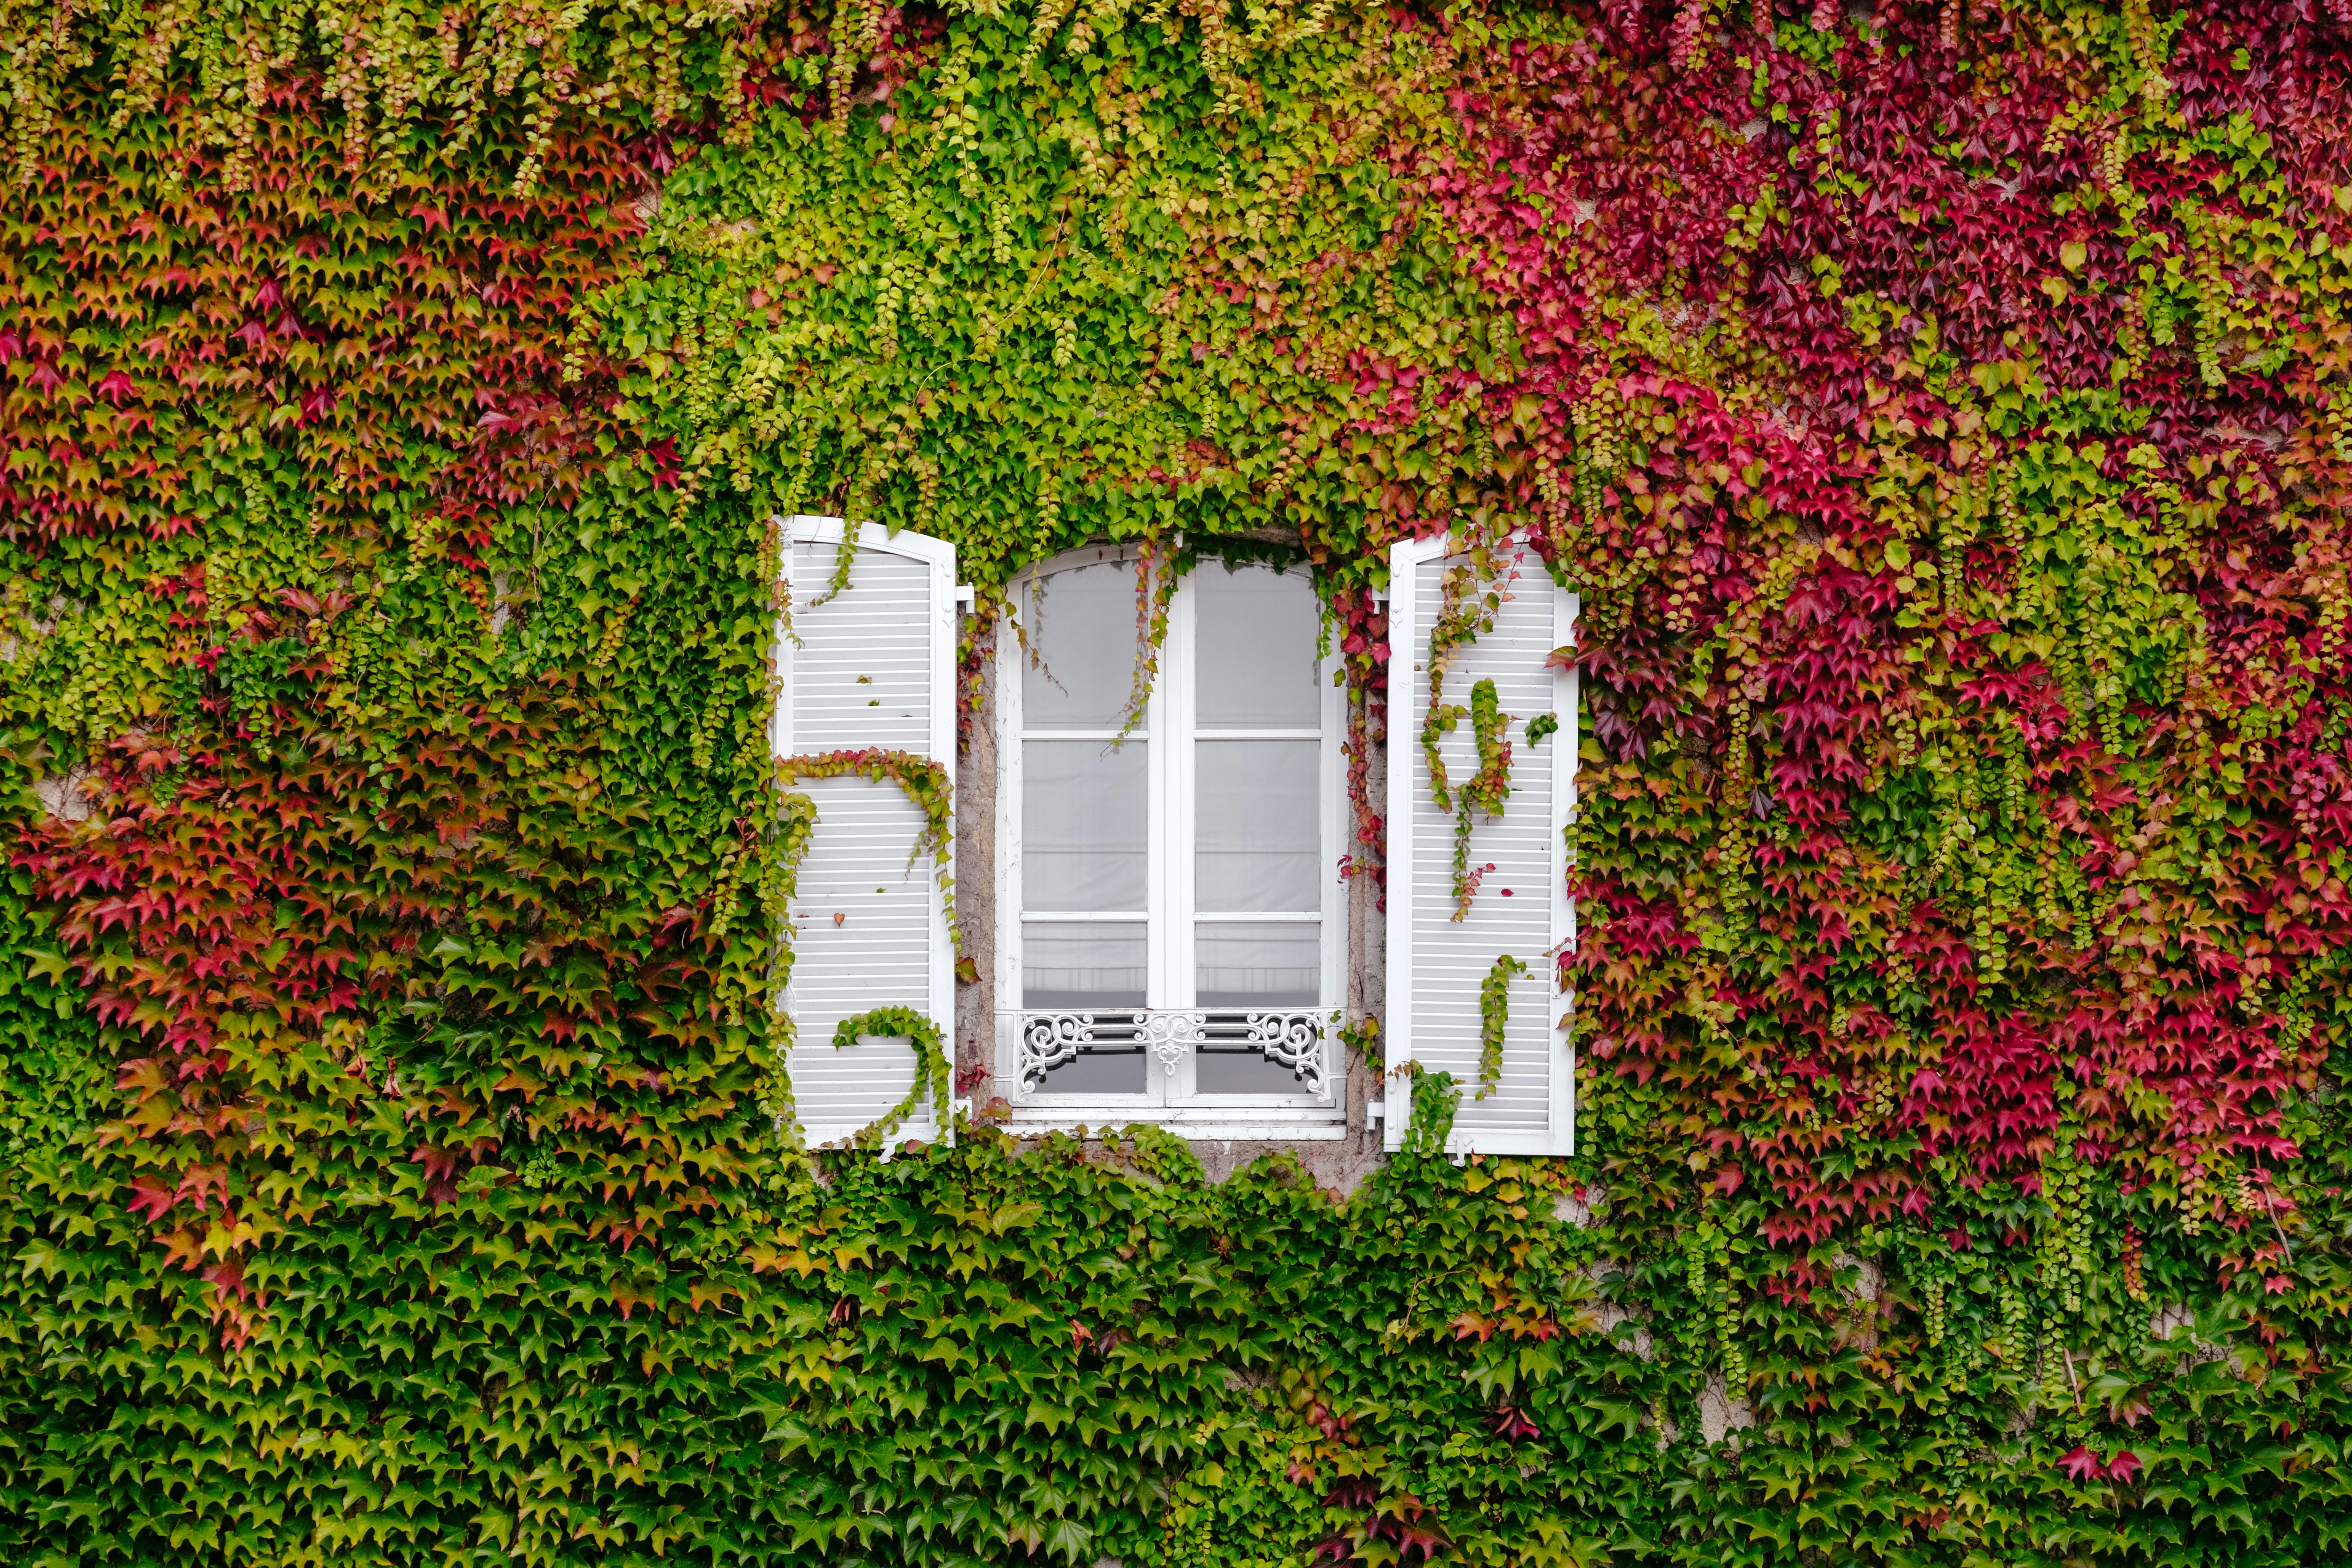 clear glass window with grown green and pink vines